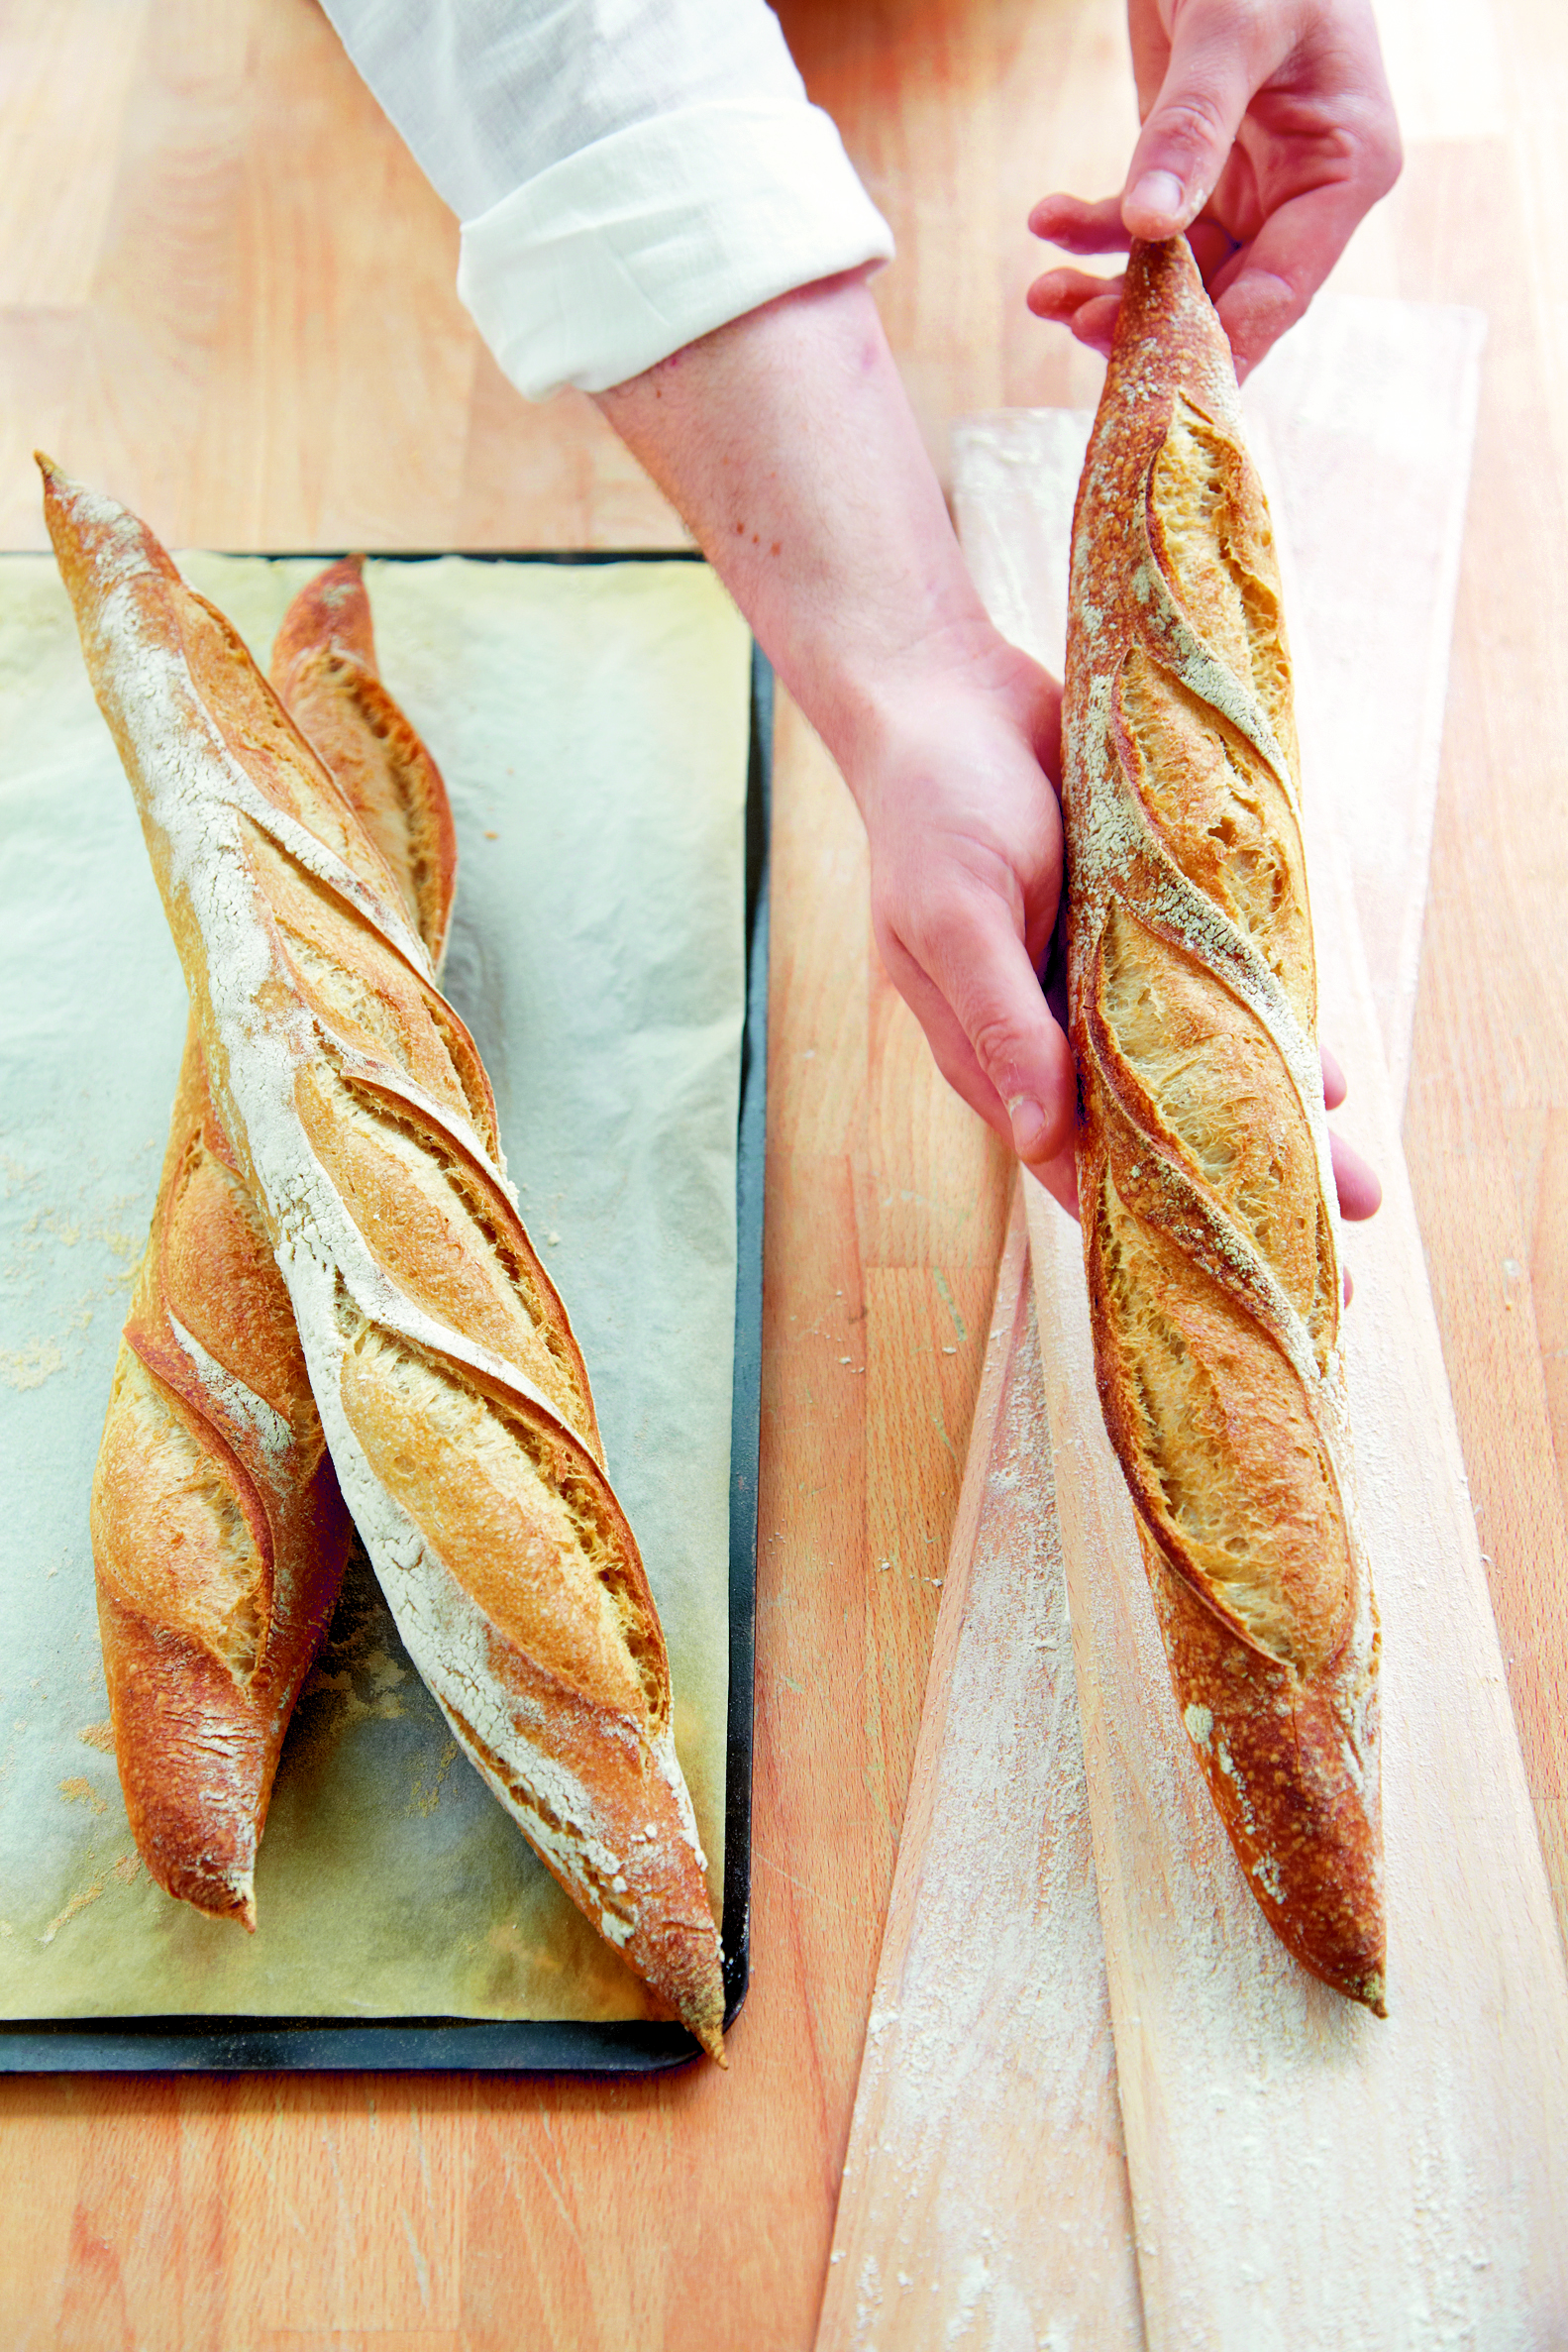 Phaidon's Upskill Sessions - How to Make a French Baguette